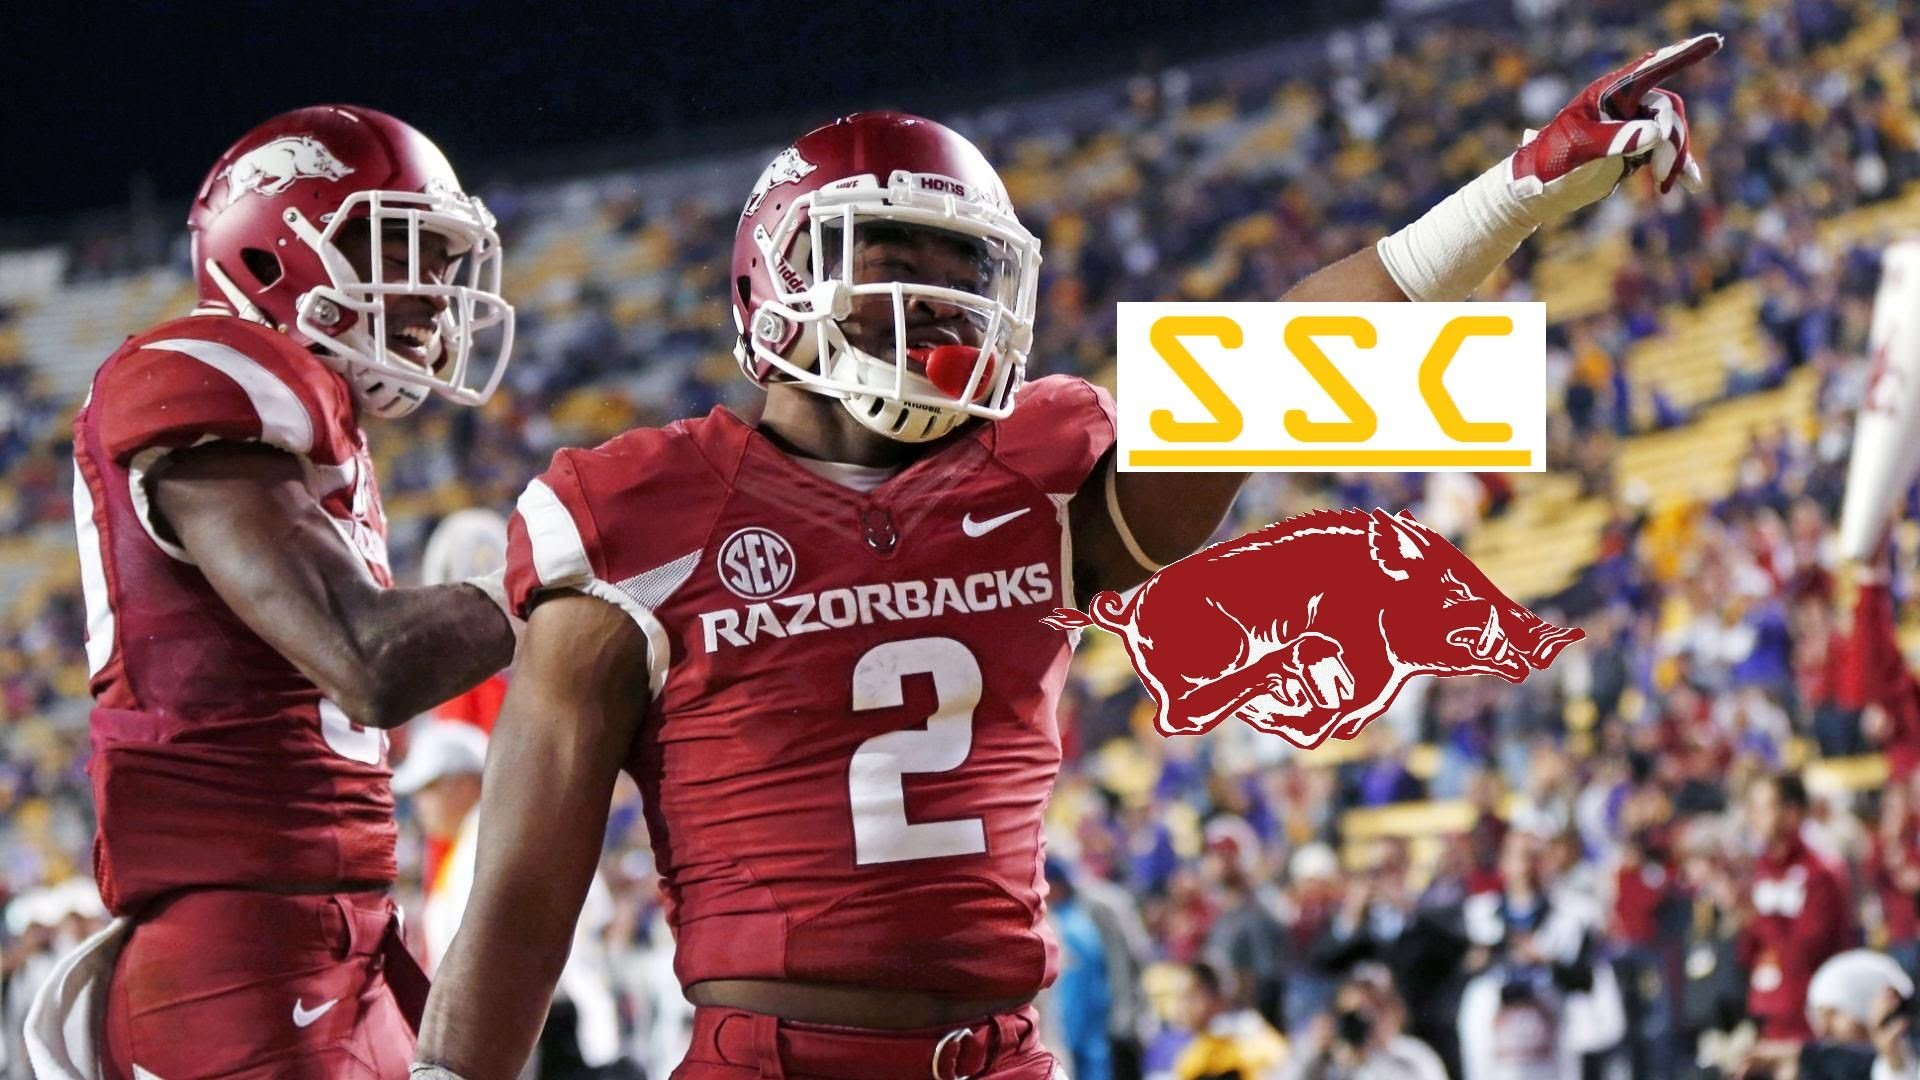 1920x1080 Arkansas Razorbacks 2016 Team Preview